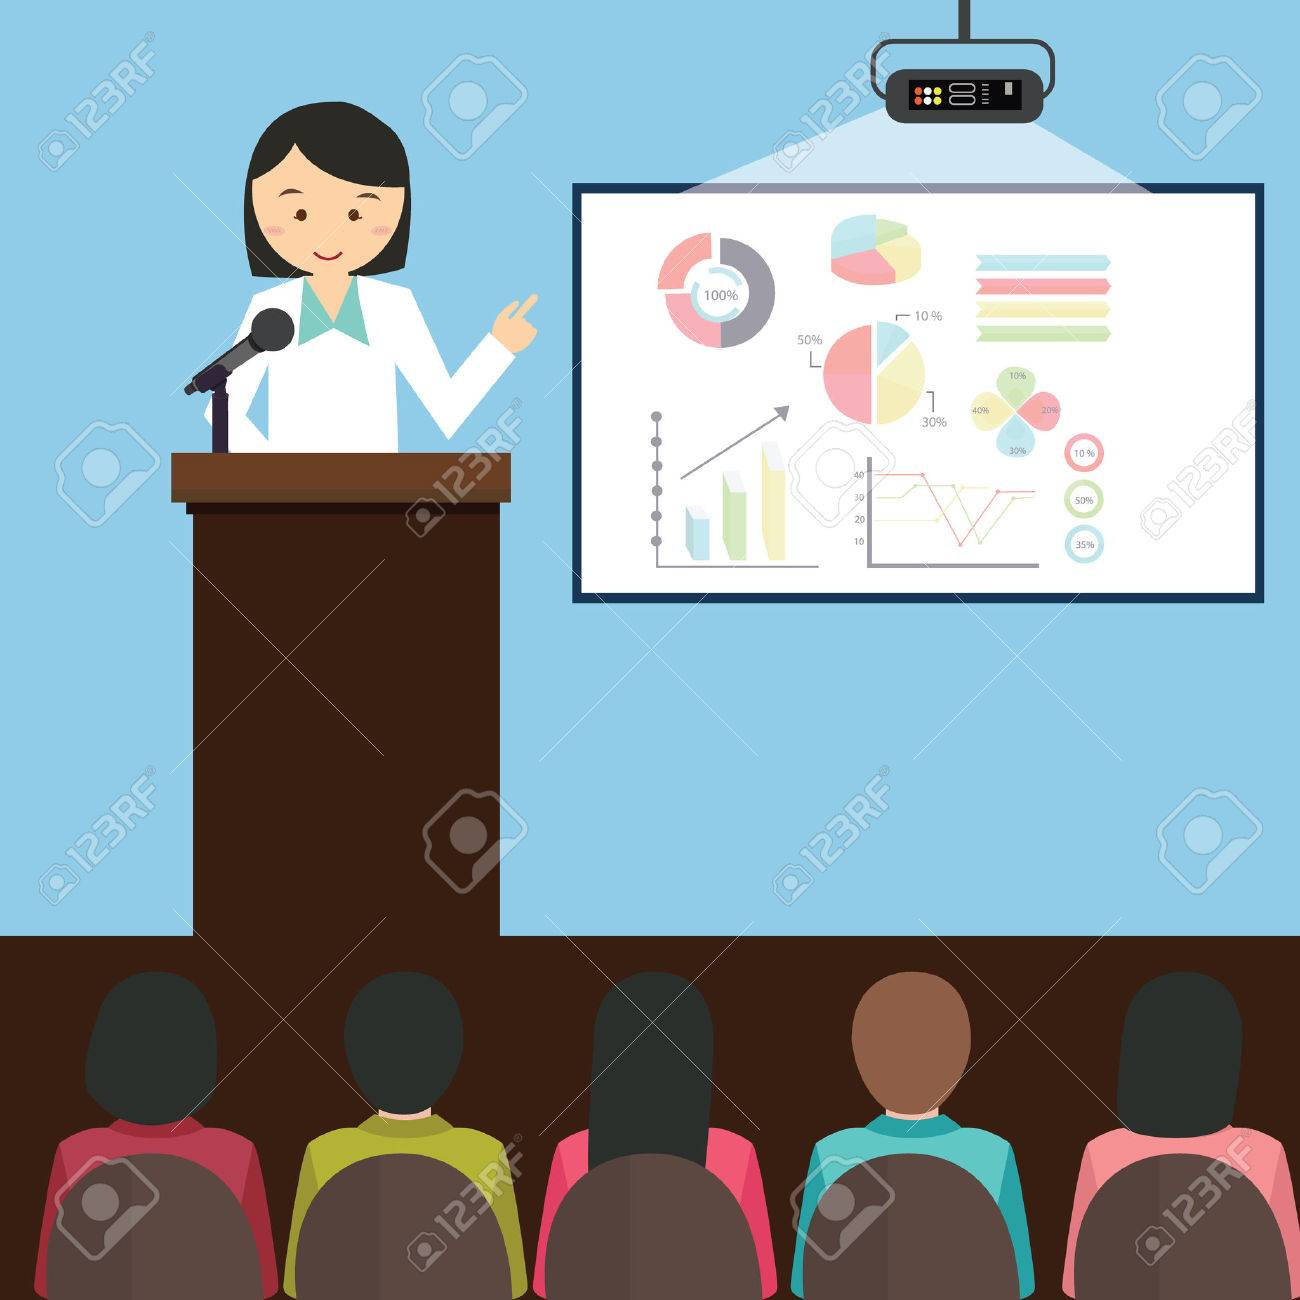 woman girl female give presentation presenting chart report speech in front of audience illustration cartoon - 50144861